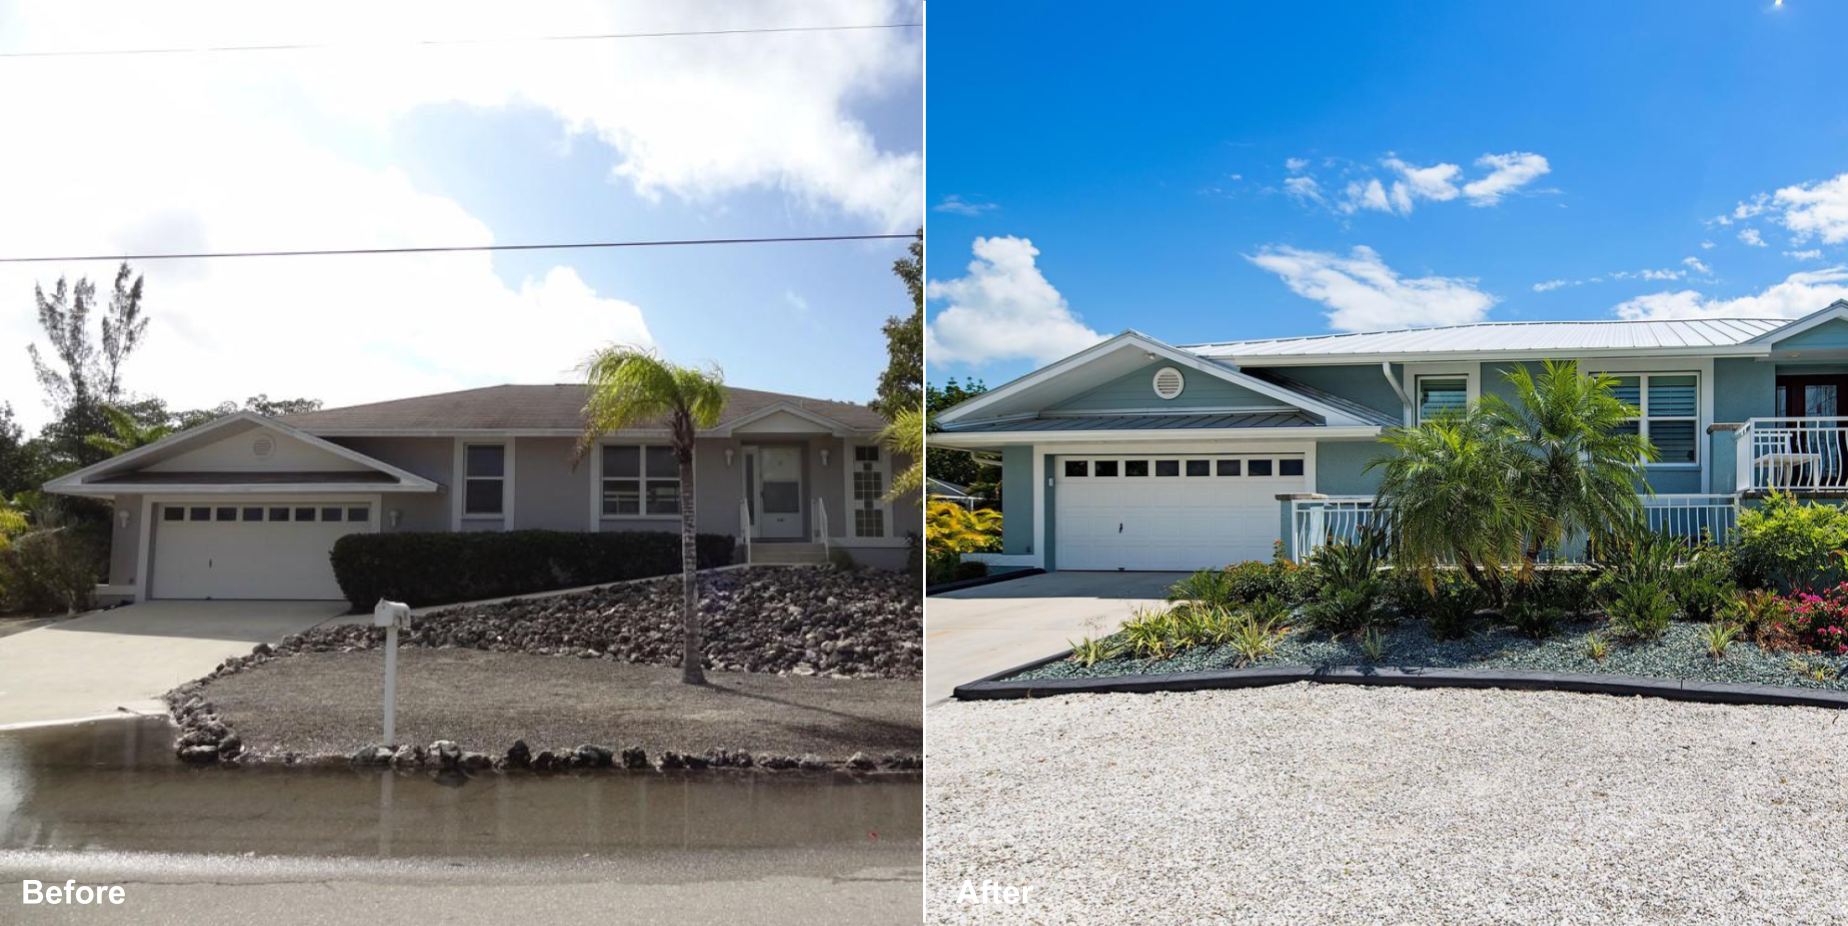 16 Fairview Front Before and After.png